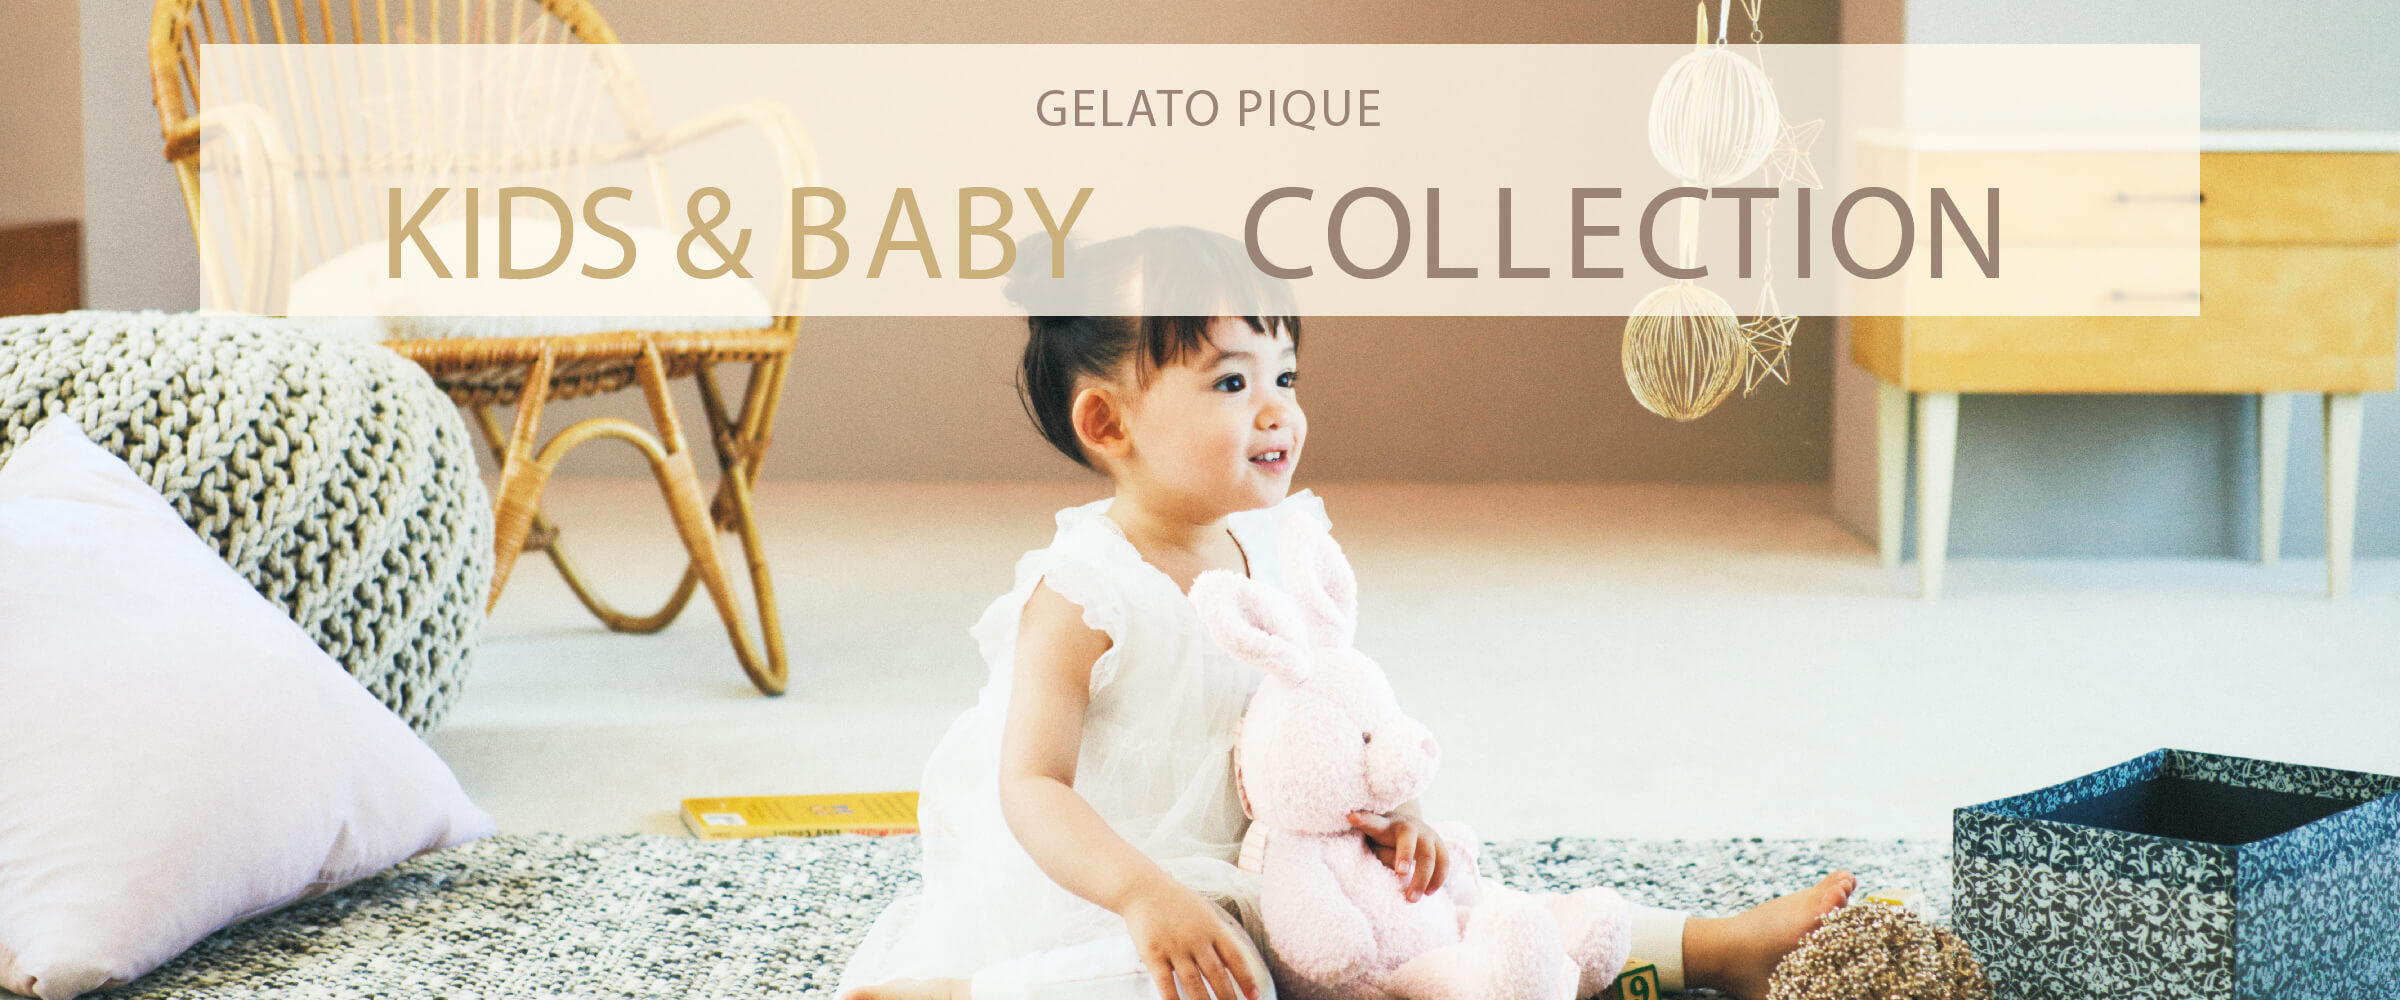 KIDS&BABY COLLECTION